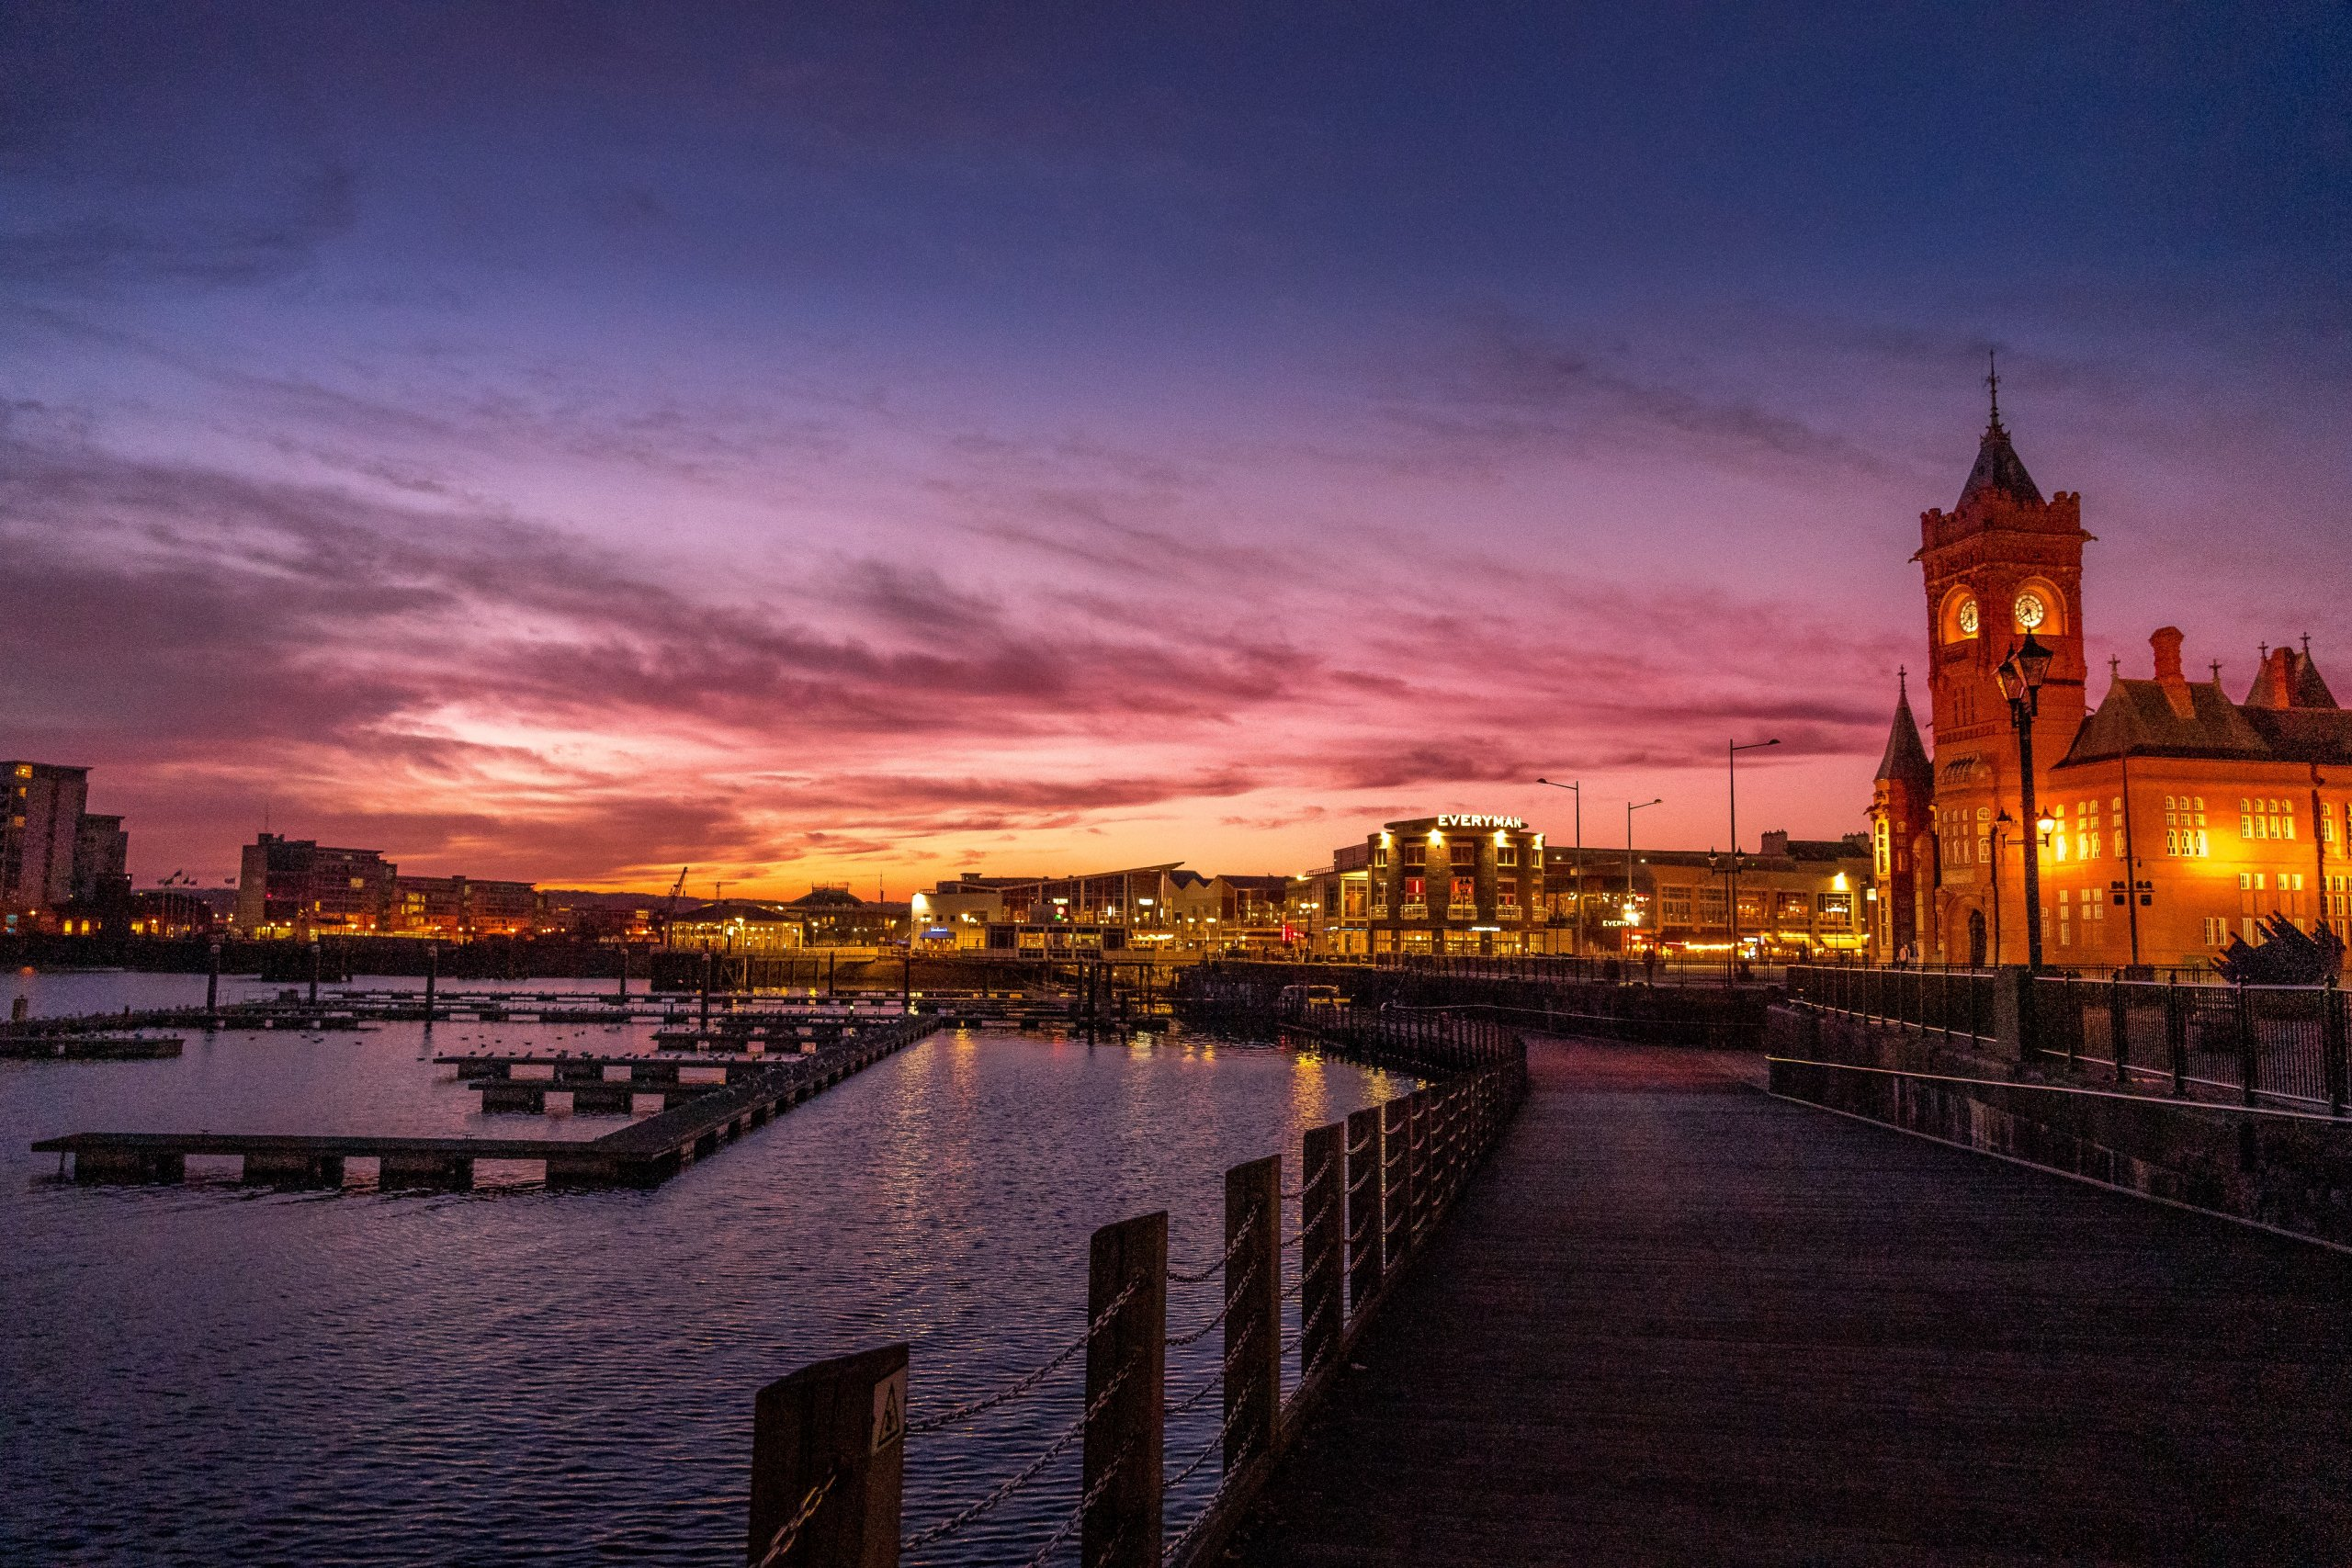 Sunset over Cardiff Bay, waterside marina with buildings and large clock tower lit up in early Welsh evening